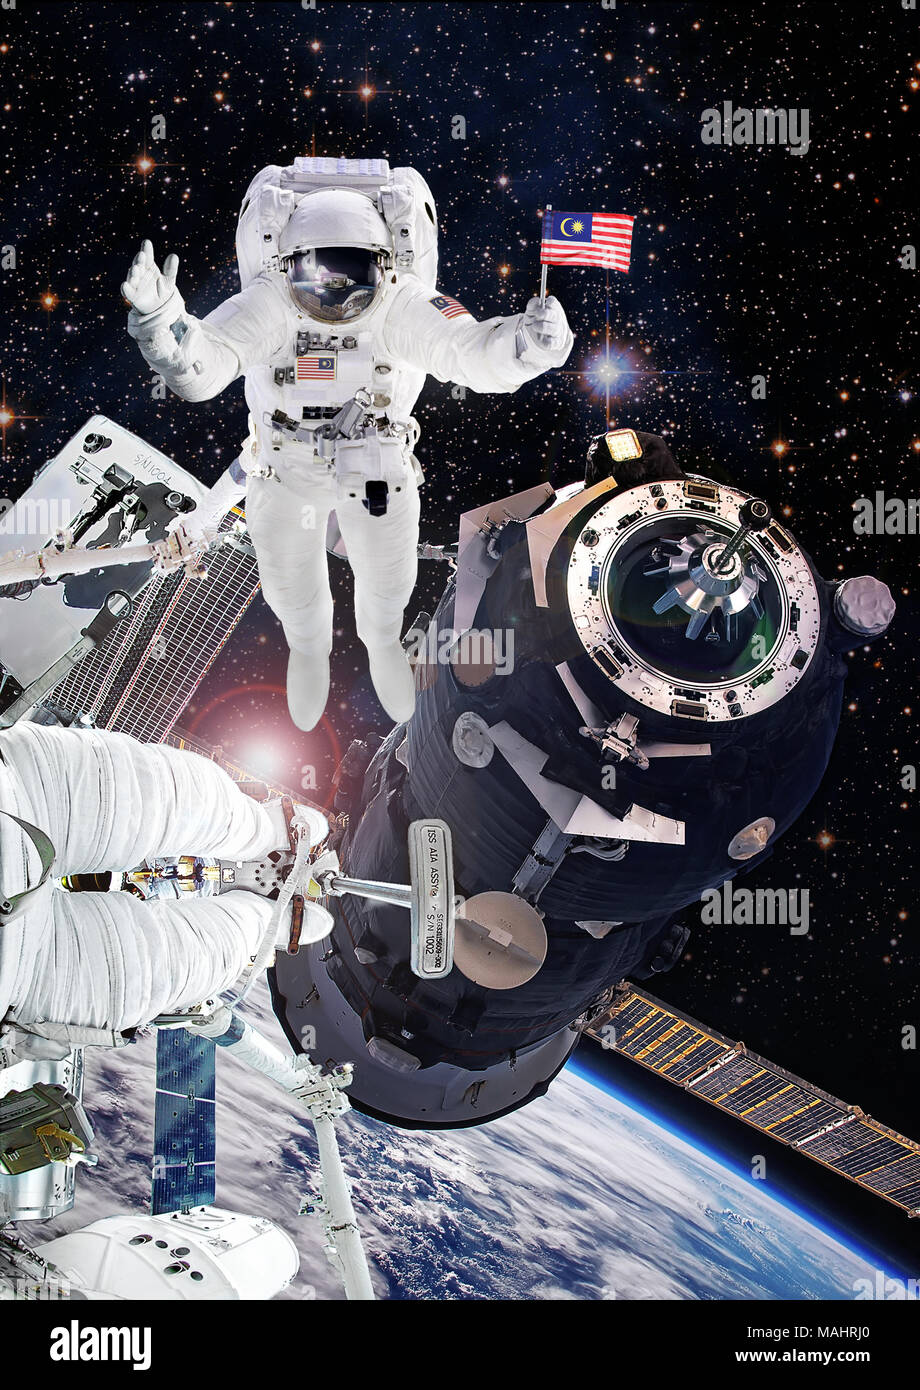 Astronaut in outer space, artist expression of Malaysia National Space Agency cosmonaut on International Space Station. Elements of this image furnish Stock Photo